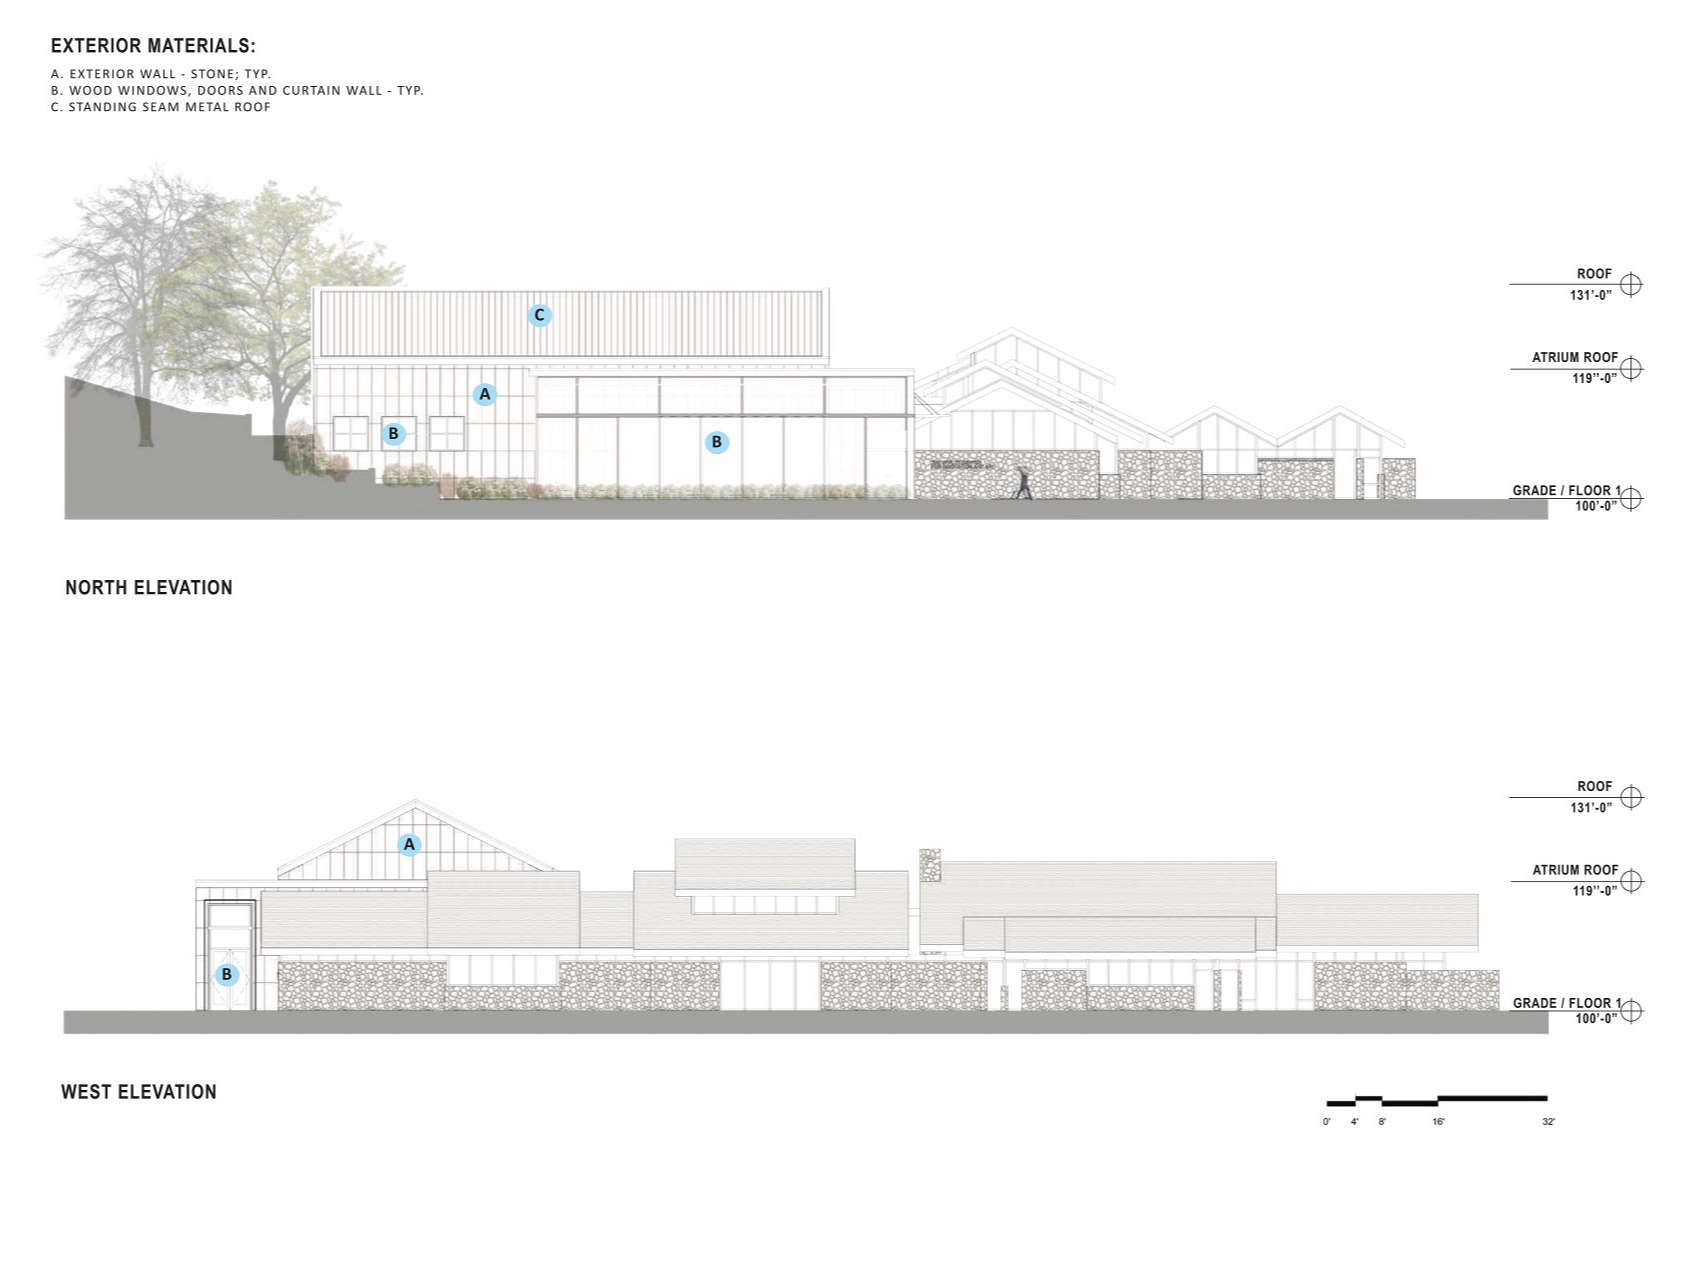 LIBRARY+PLANS_INDESIGN+SD_02.05.2019_11x17+Page+004.jpg